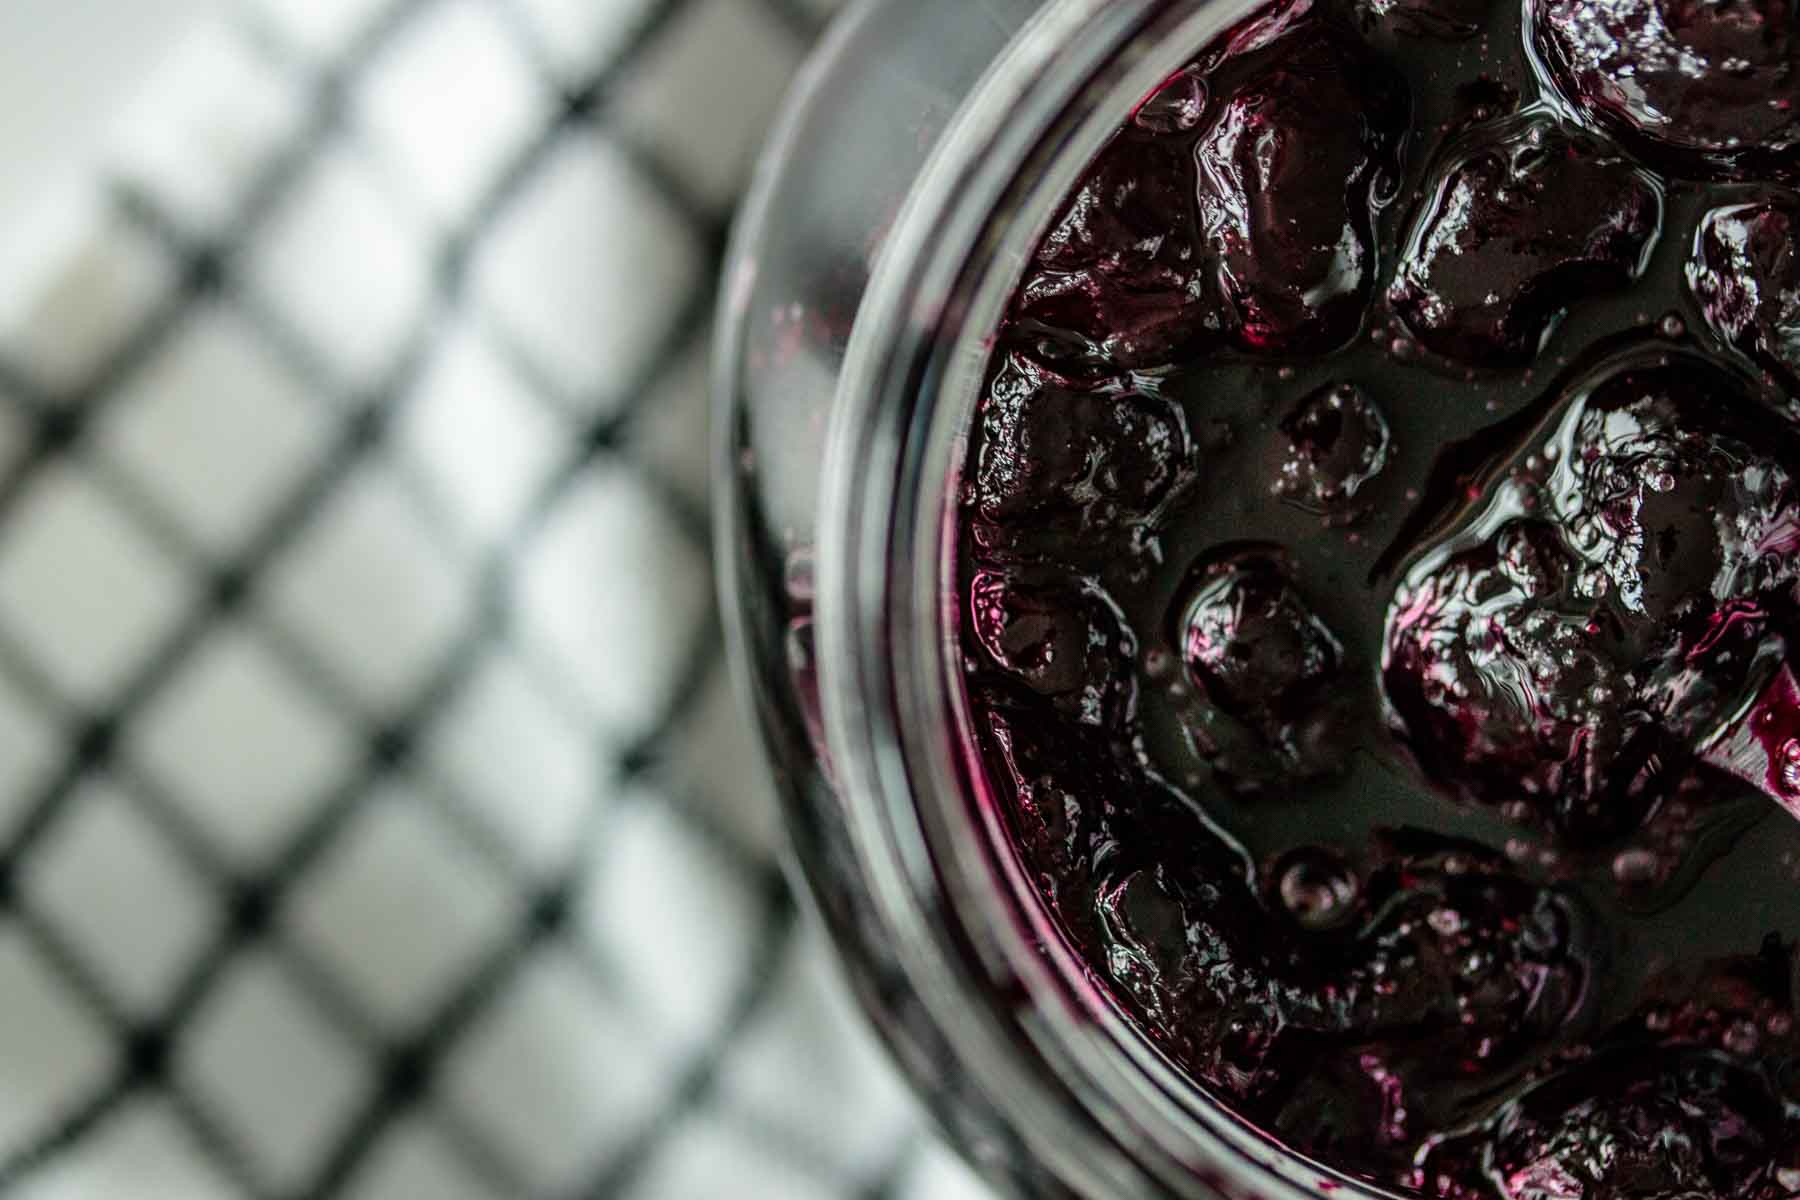 blueberry compote in a jar